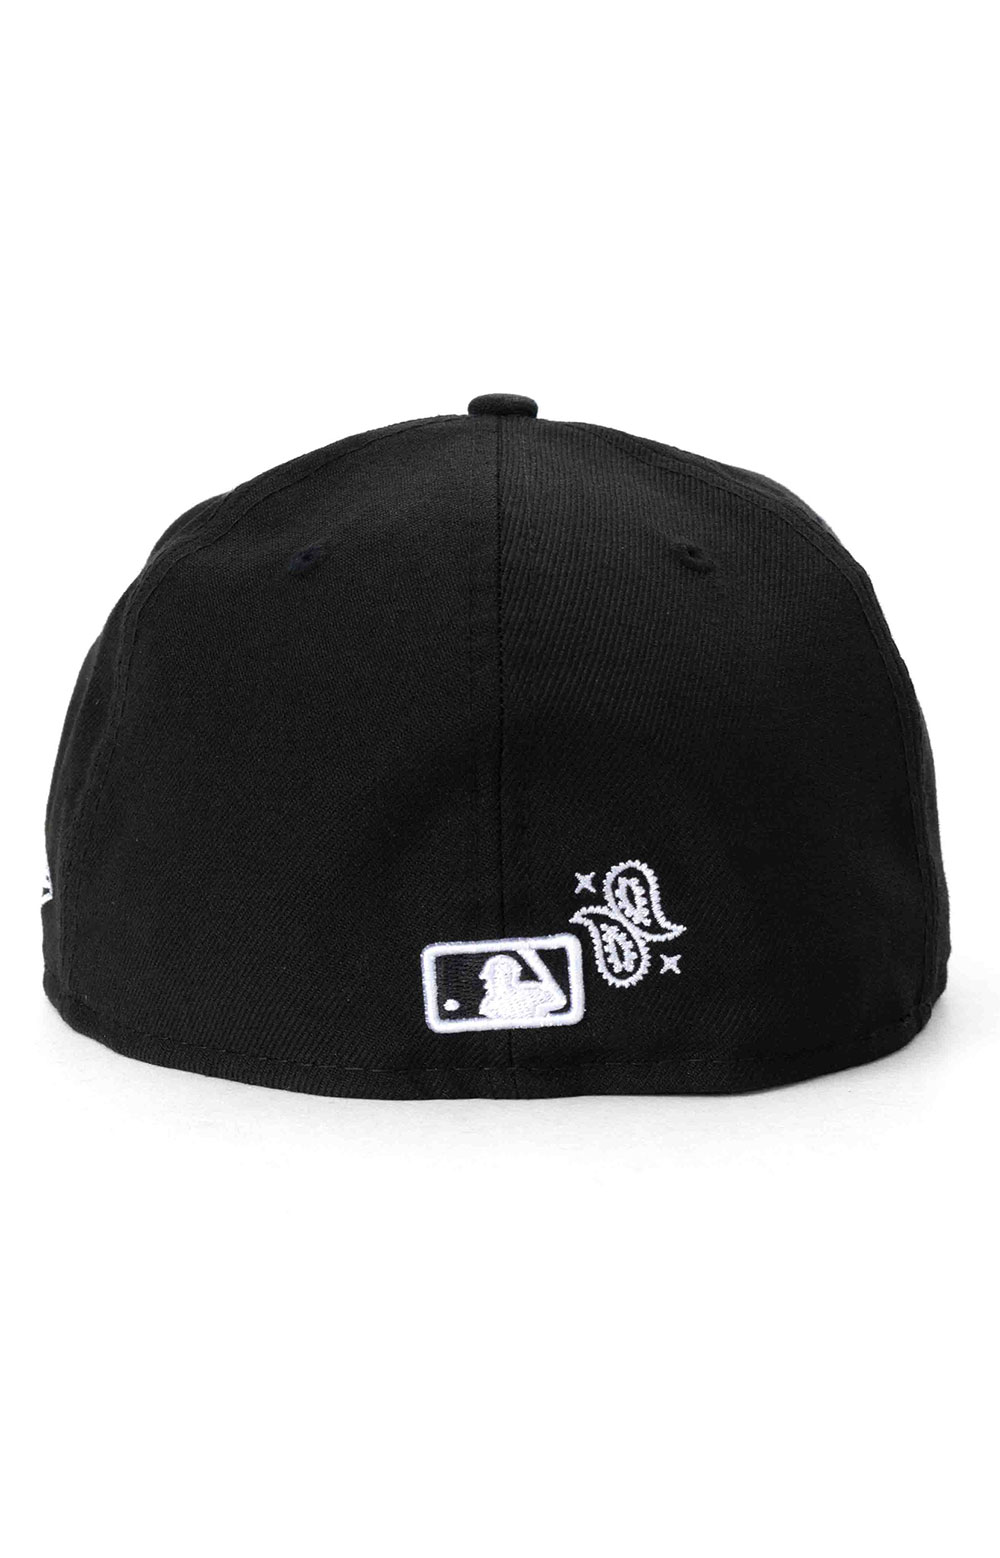 Oakland Athletics Paisley Elements 59Fifty Fitted Hat - Black  4